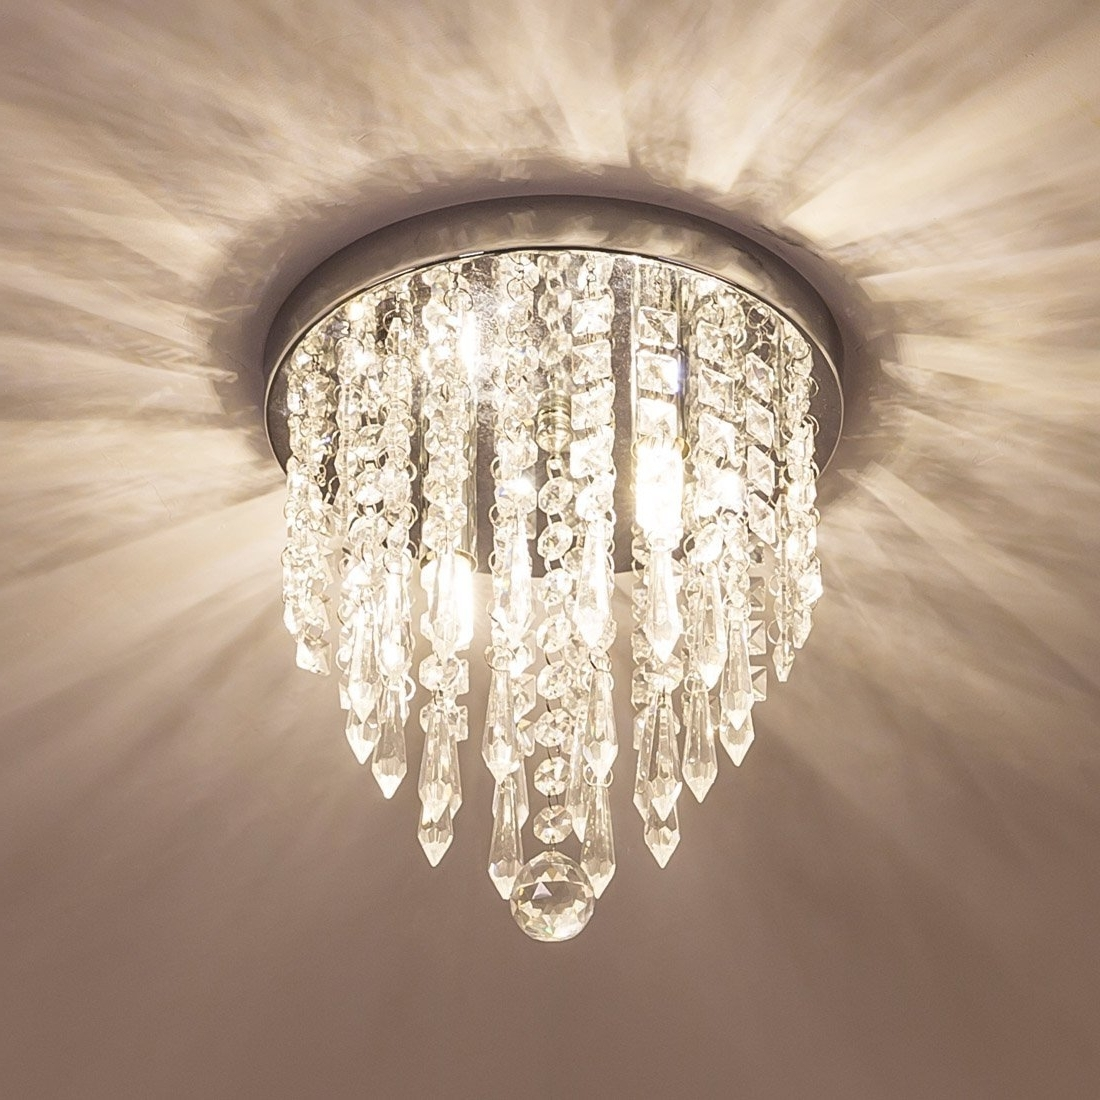 Lighting & Ceiling Fans – Ceiling Lights Intended For Short Chandelier (View 7 of 15)